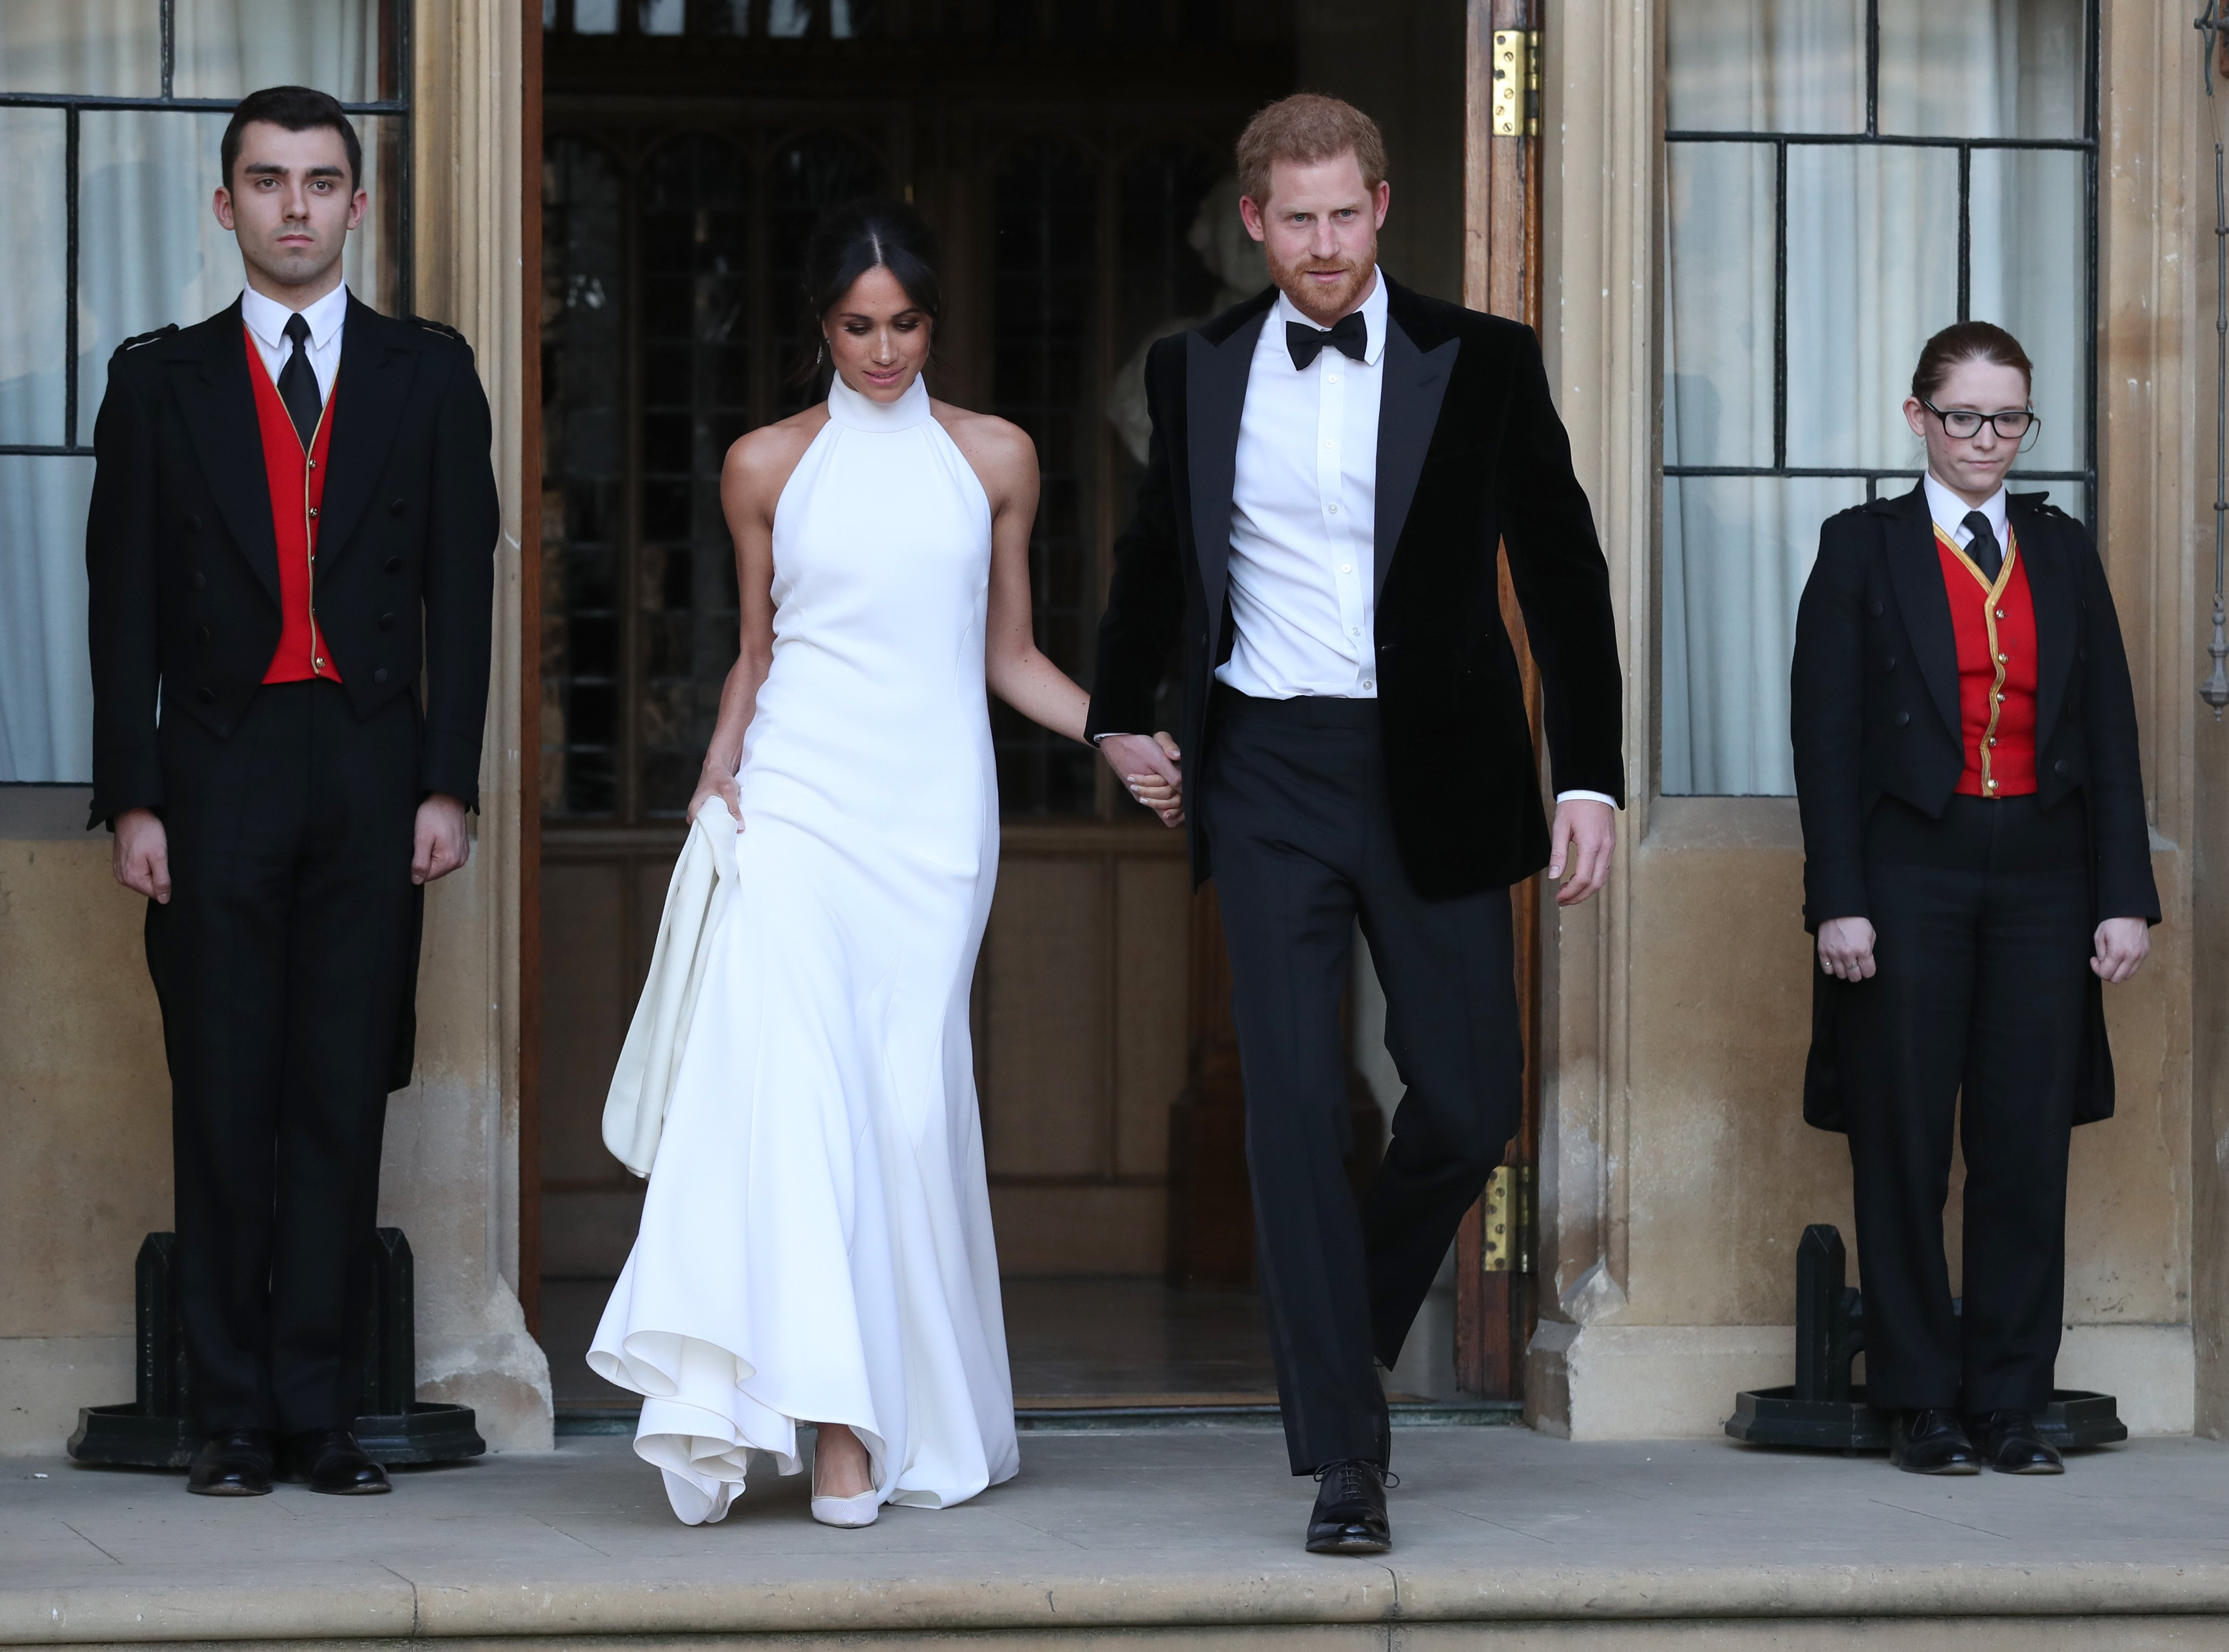 Duchess of Sussex and Prince Harry, Duke of Sussex leave Windsor Castle after their wedding to attend an evening reception at Frogmore House, hosted by the Prince of Wales on May 19, 2018| Photo: Getty Images